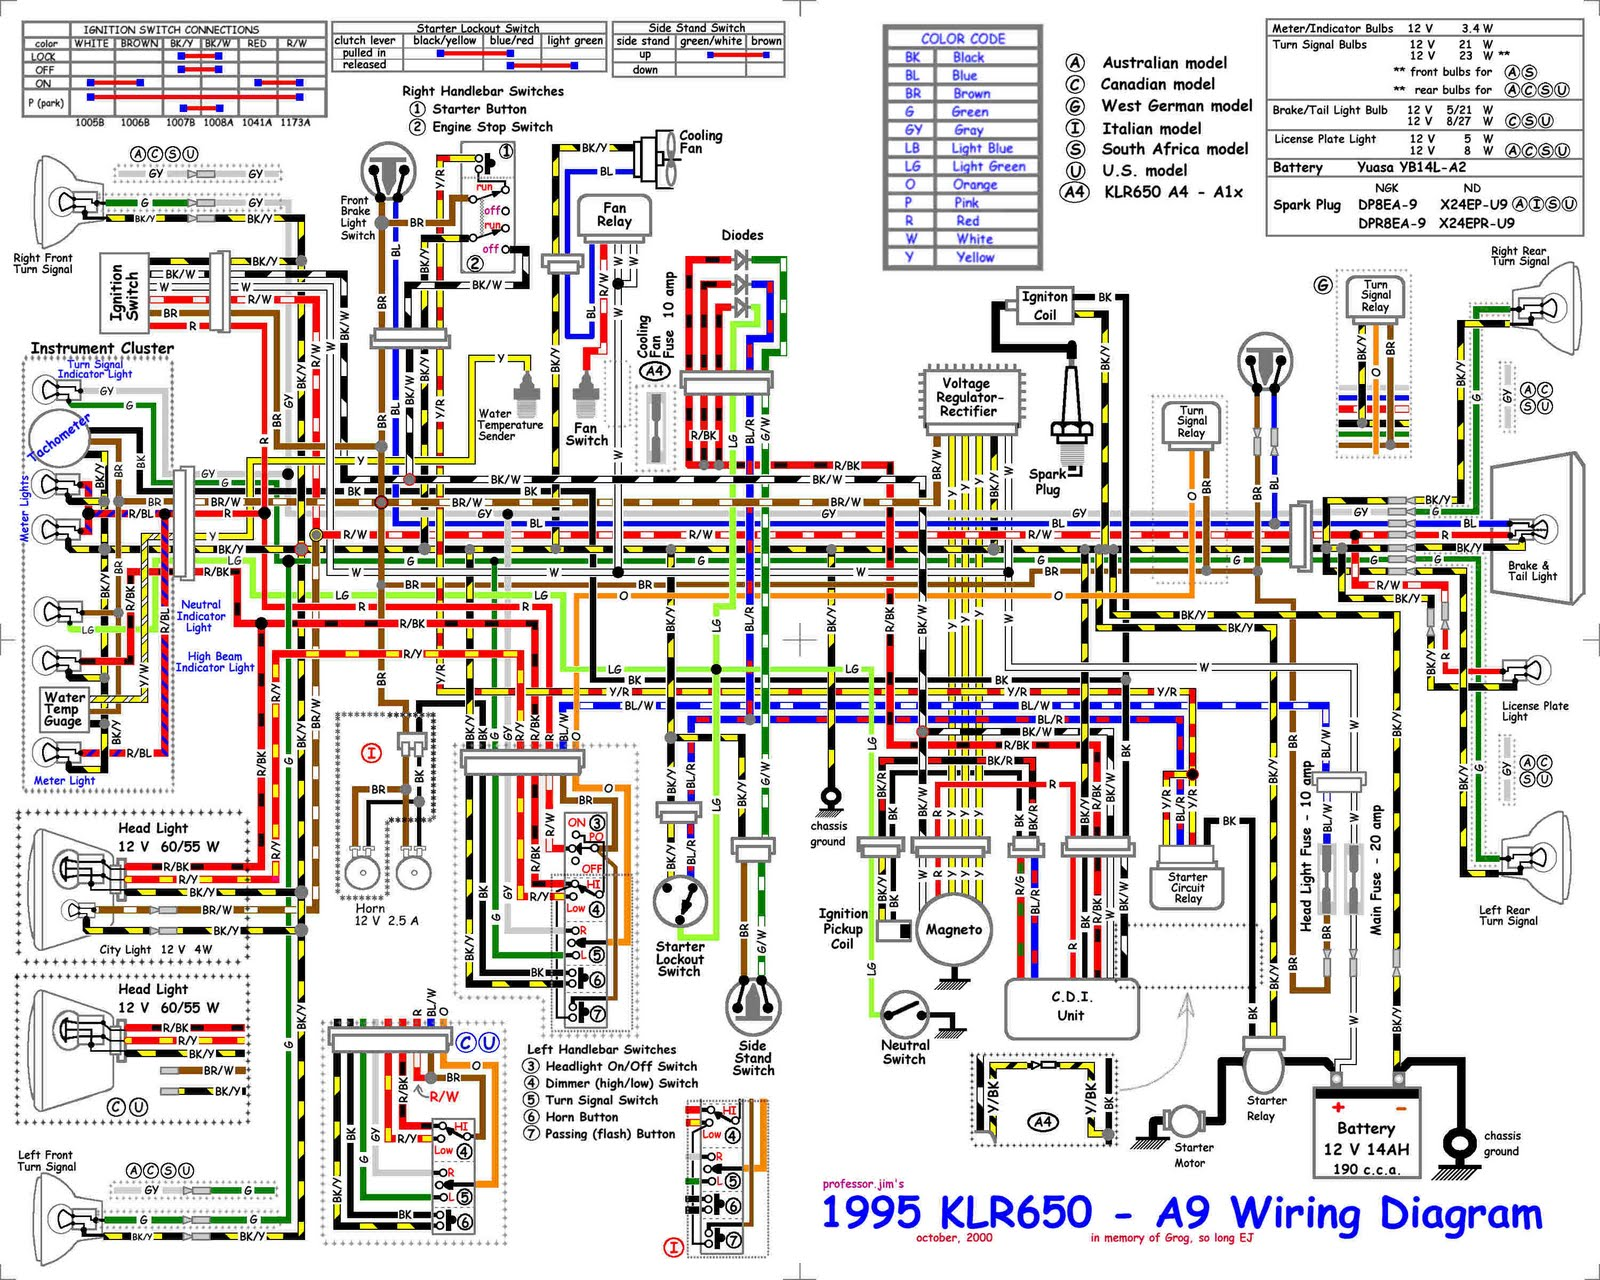 1974 monte carlo wiring diagram klr 650 wiring diagram on wiring diagram for ford focus mk1